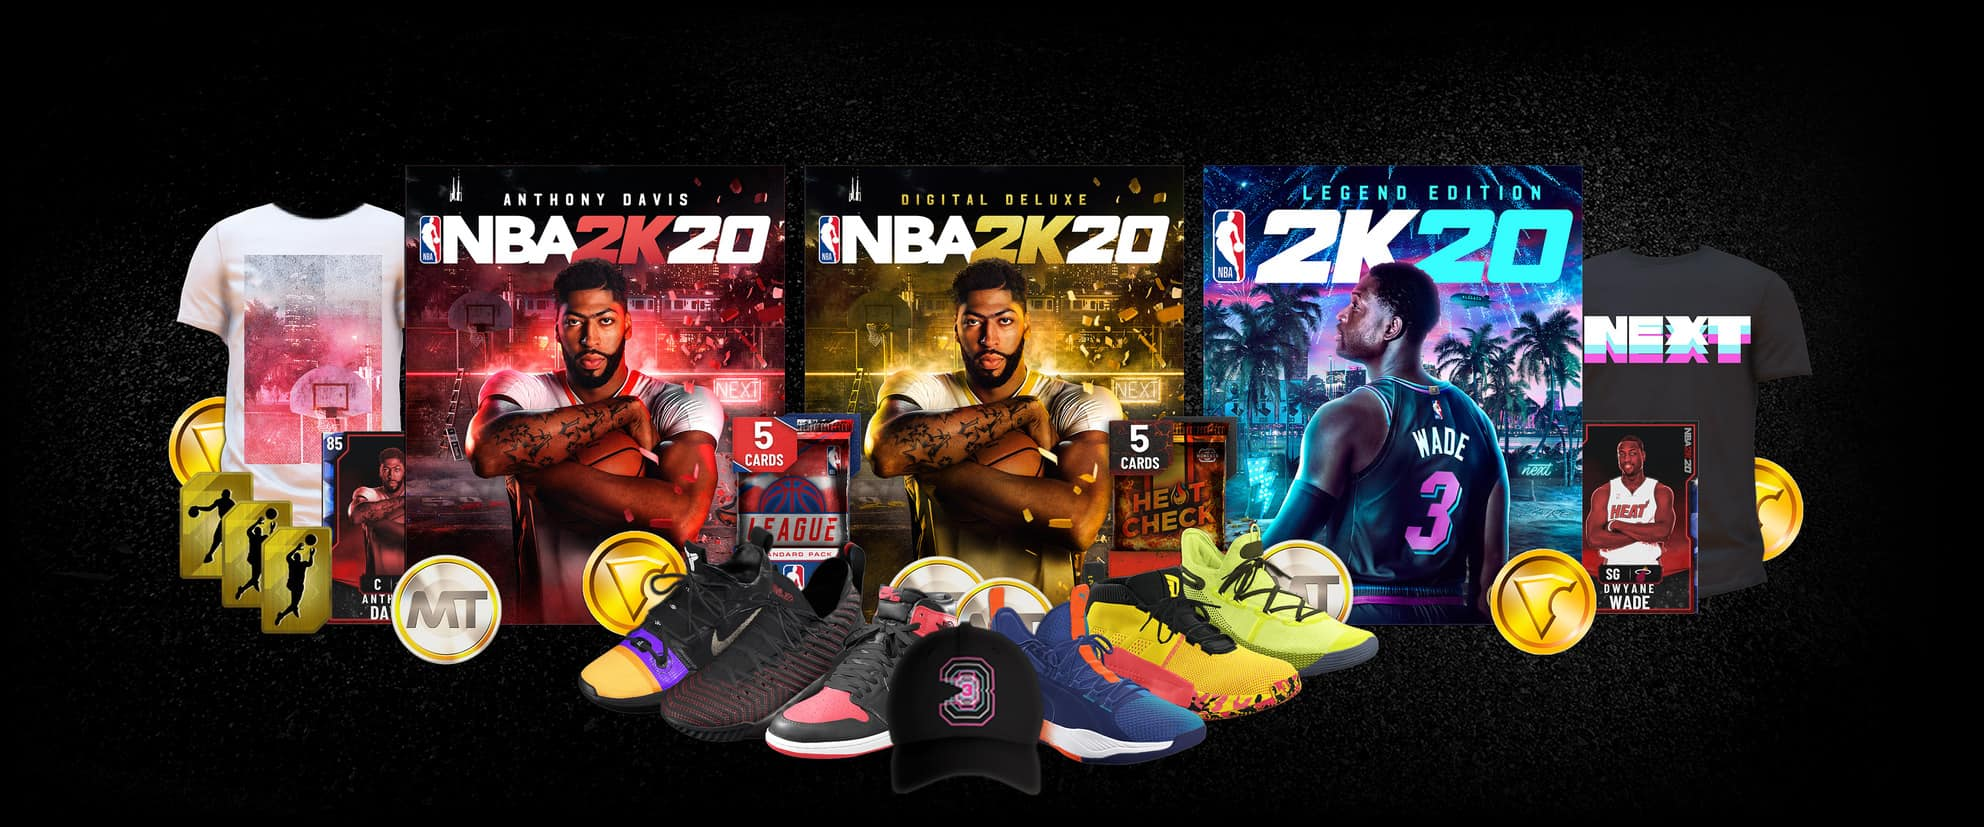 NBA 2K20' Pre Orders: Bonuses, Editions, Where to Buy and More